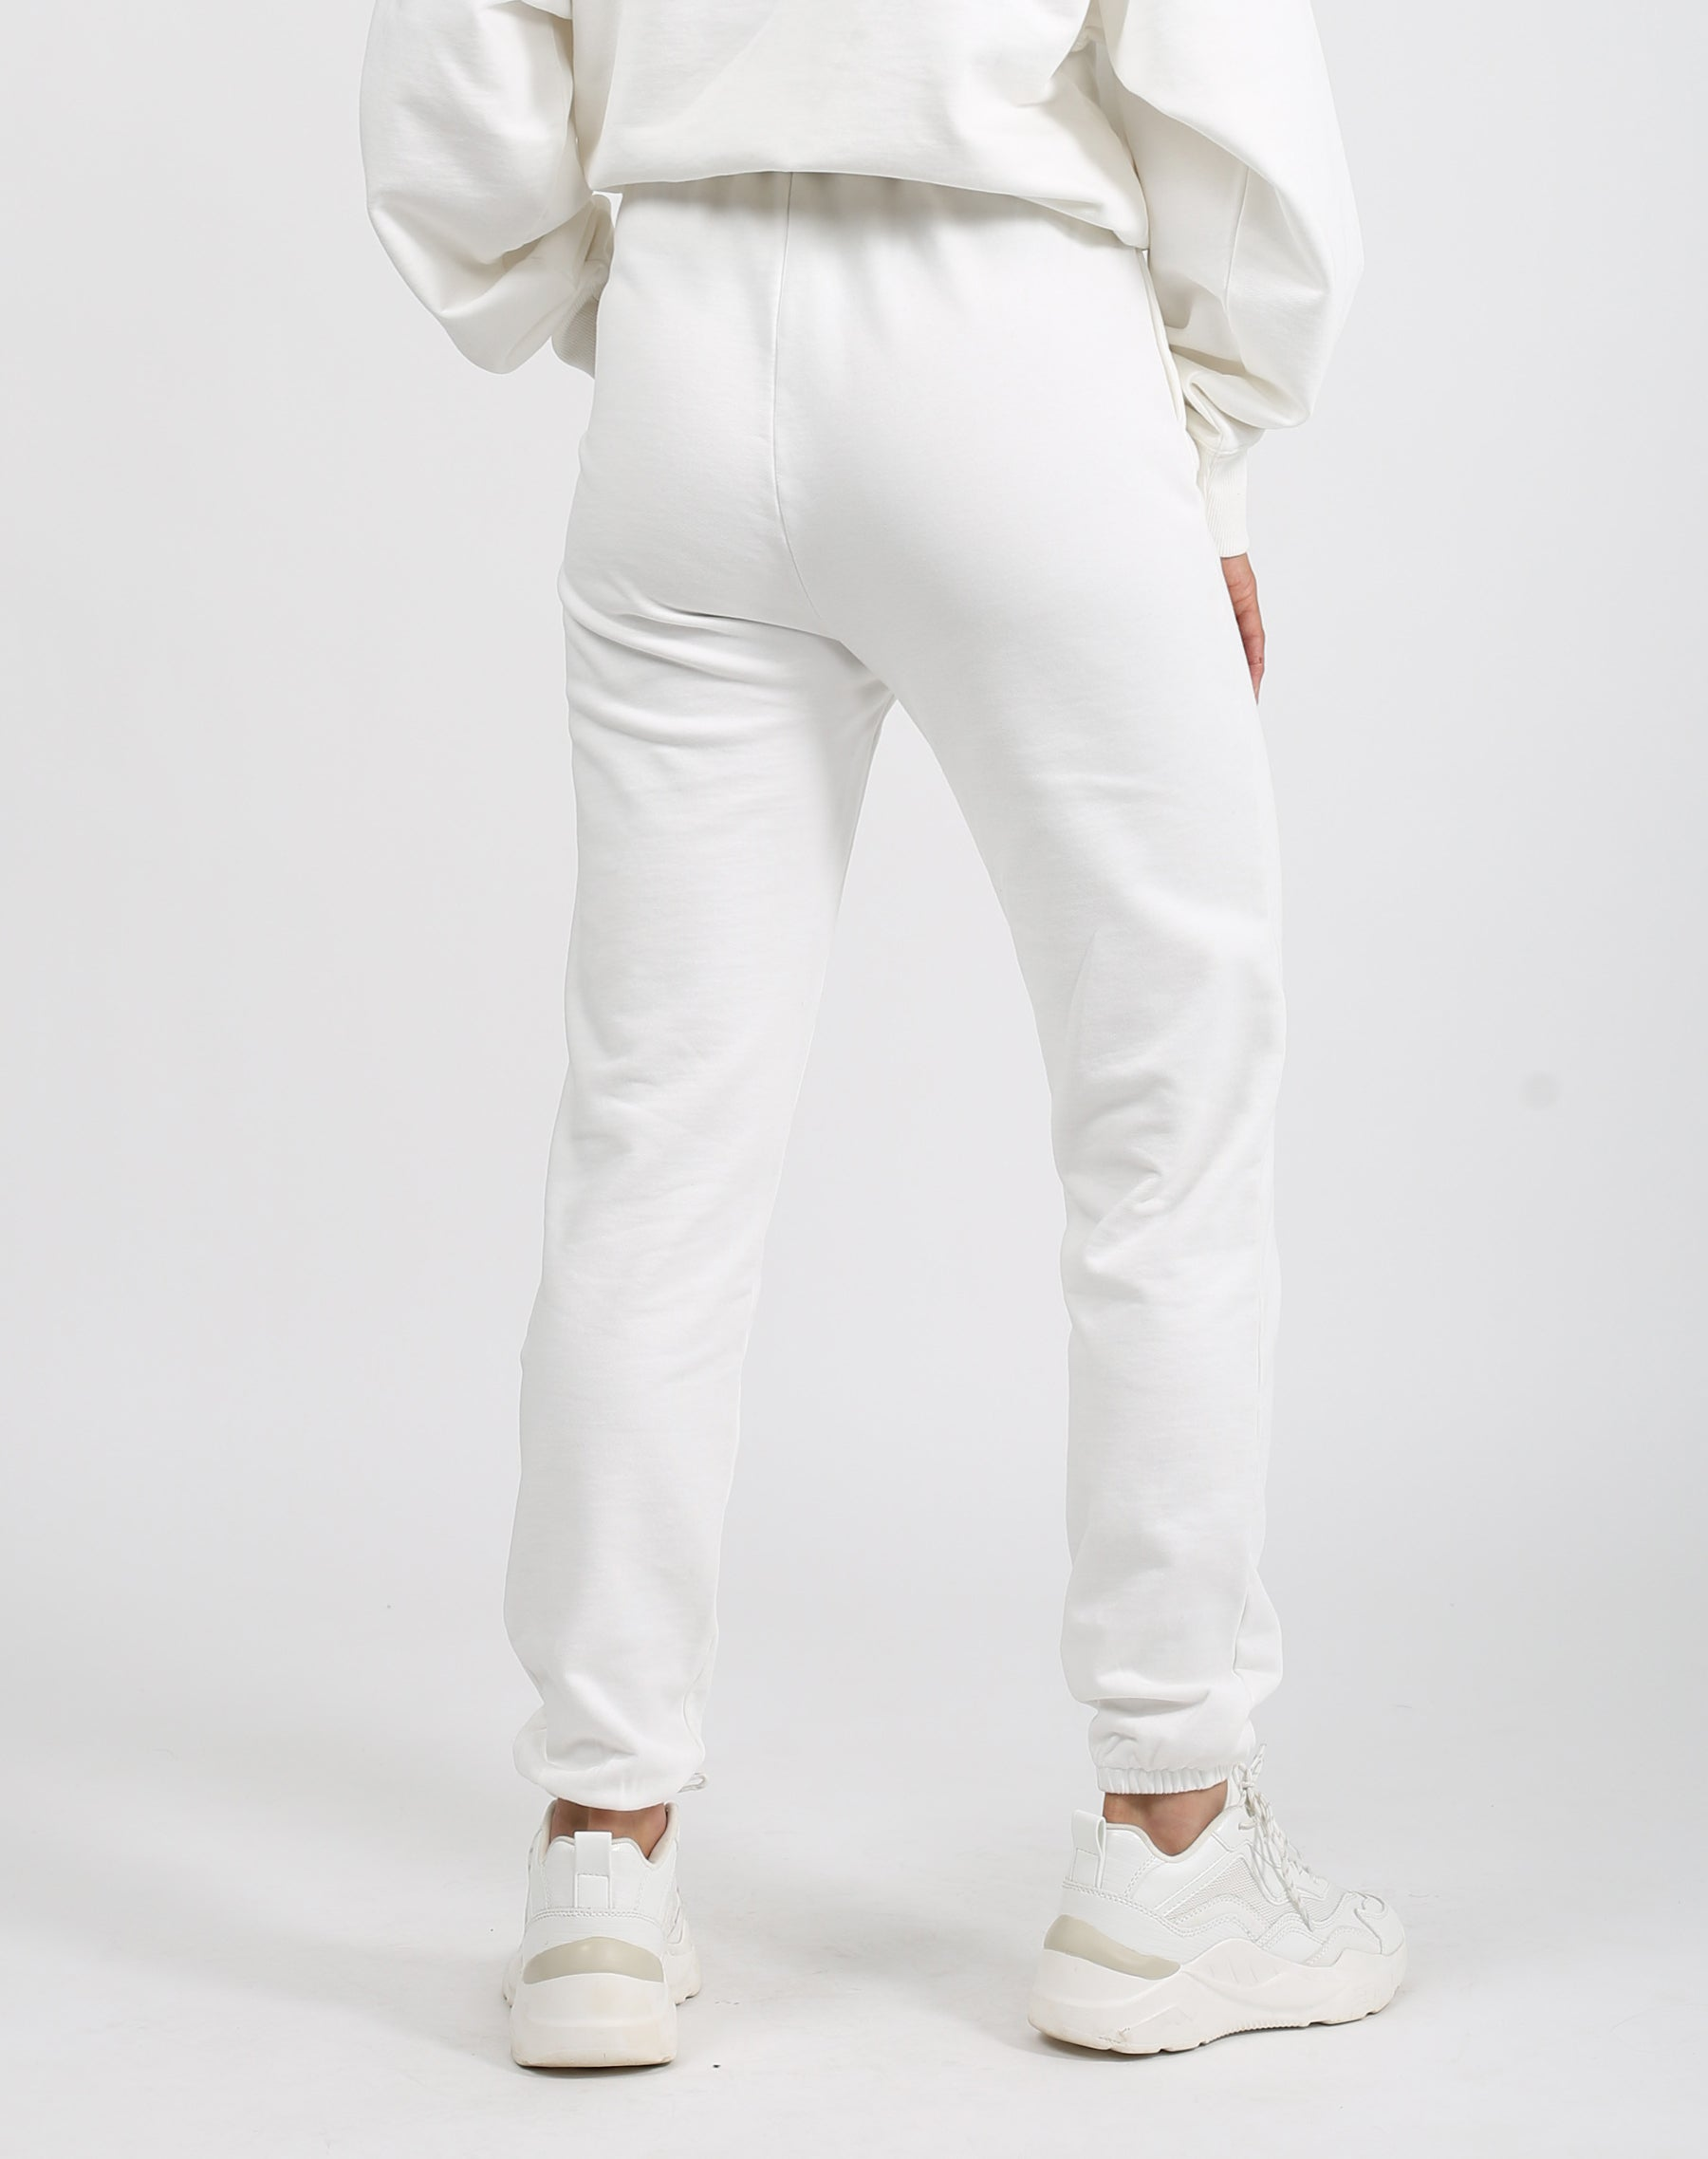 This is a photo of the back of a model wearing the Babes Social Club Best Friend Jogger in Cream by Brunette the Label.